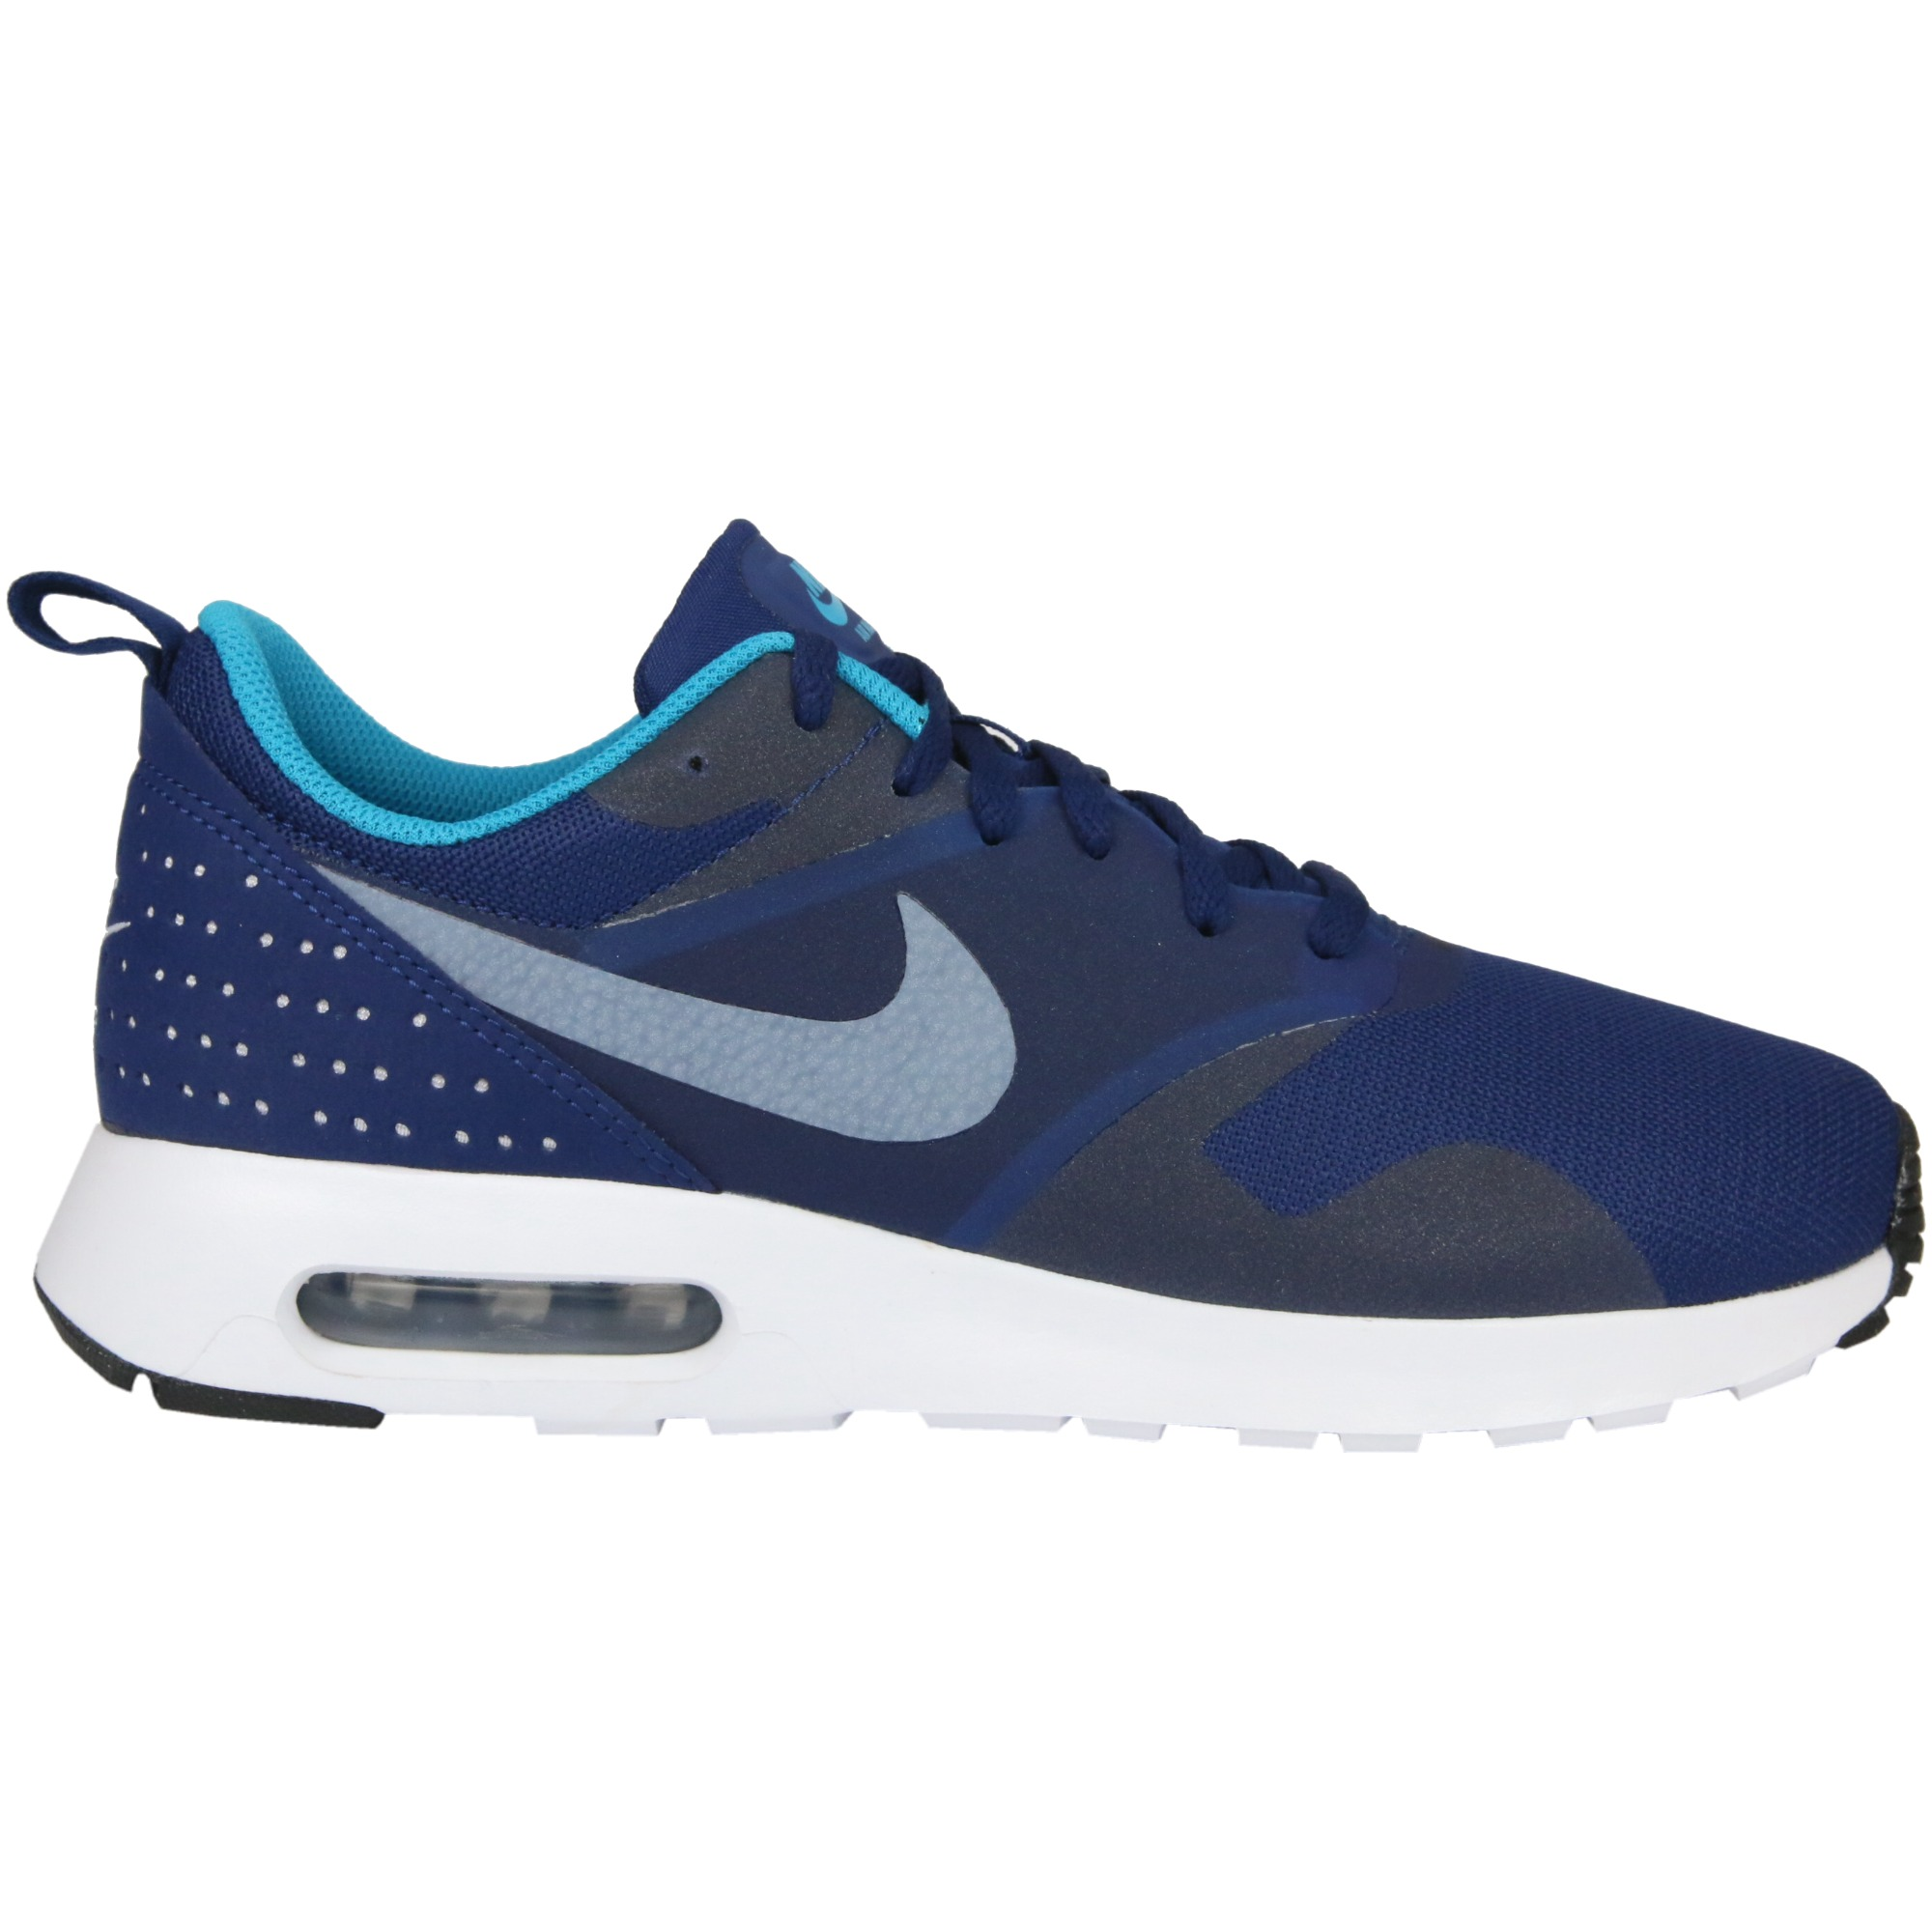 nike air max tavas essential schuhe sneaker turnschuhe. Black Bedroom Furniture Sets. Home Design Ideas